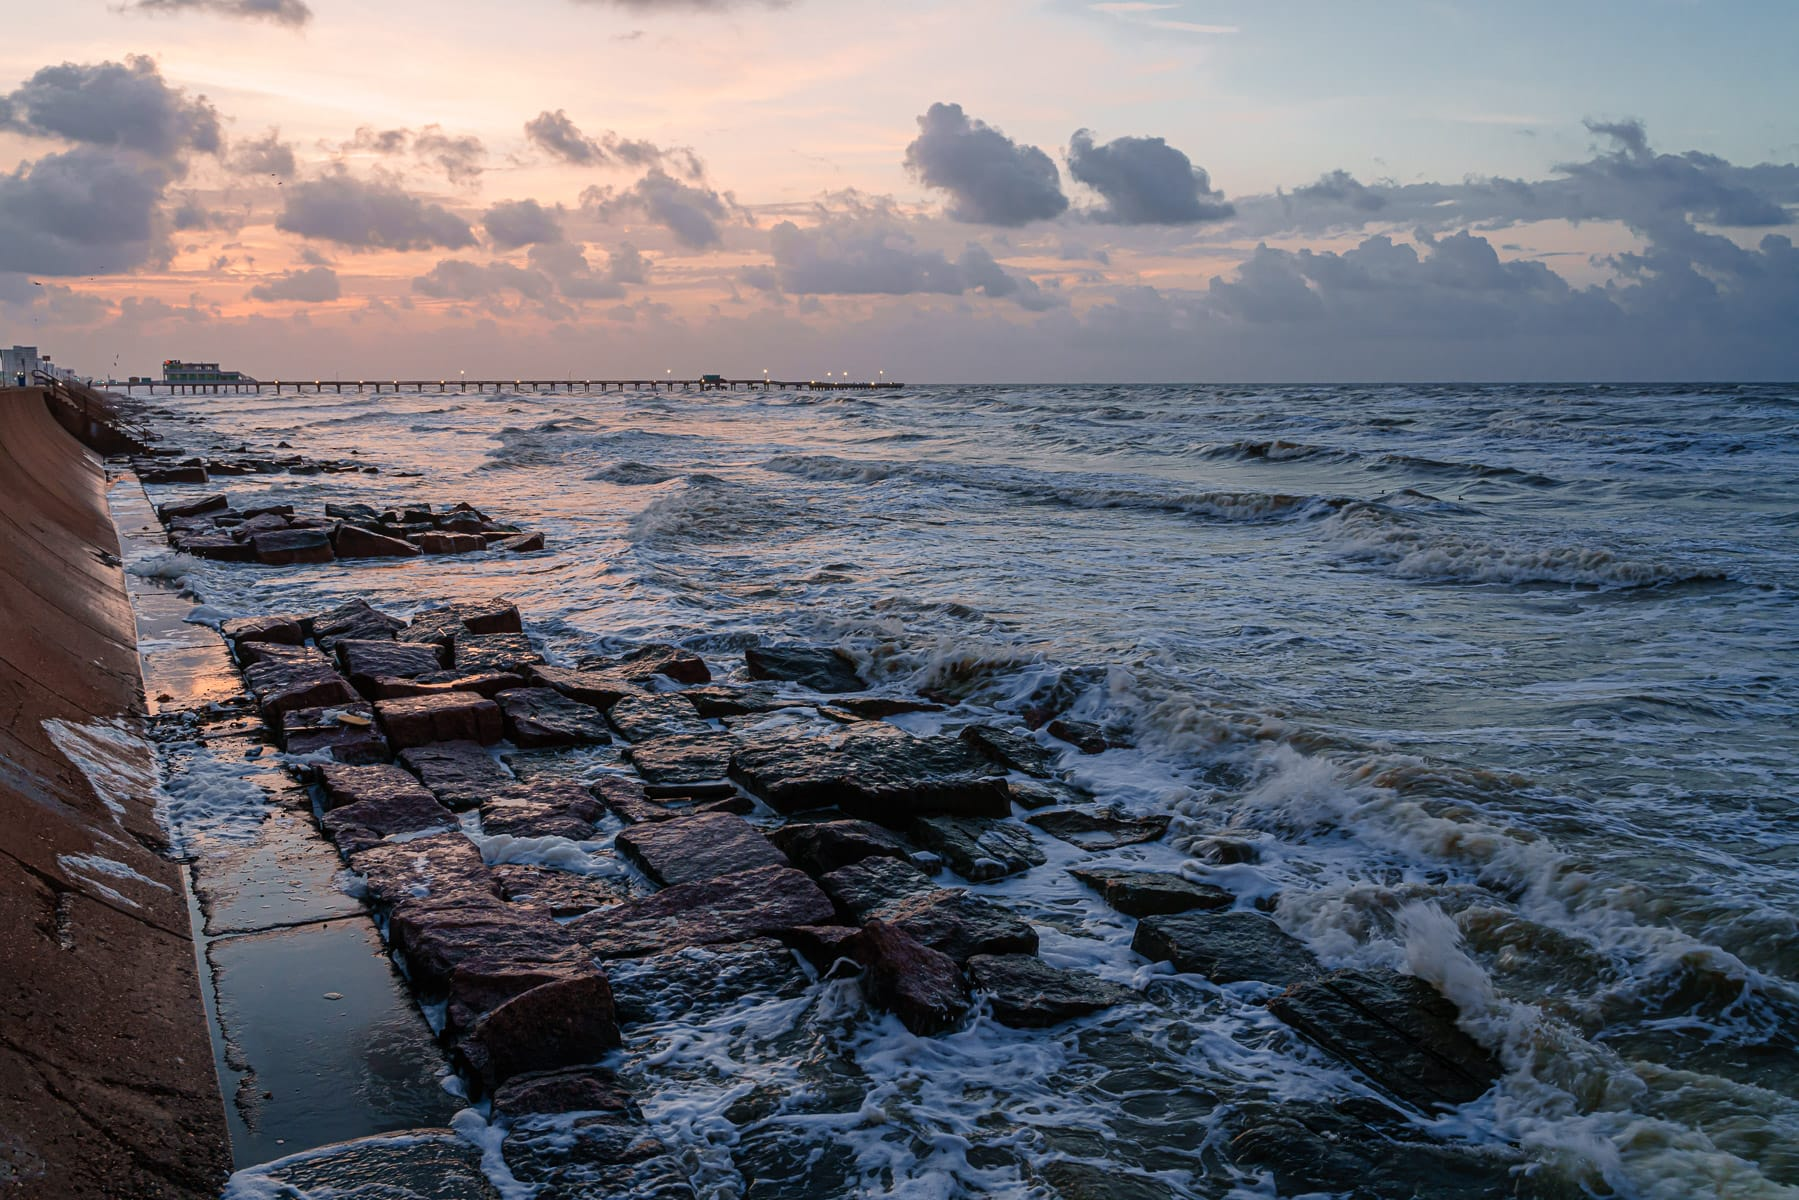 The sun rises on Galveston Island, Texas.